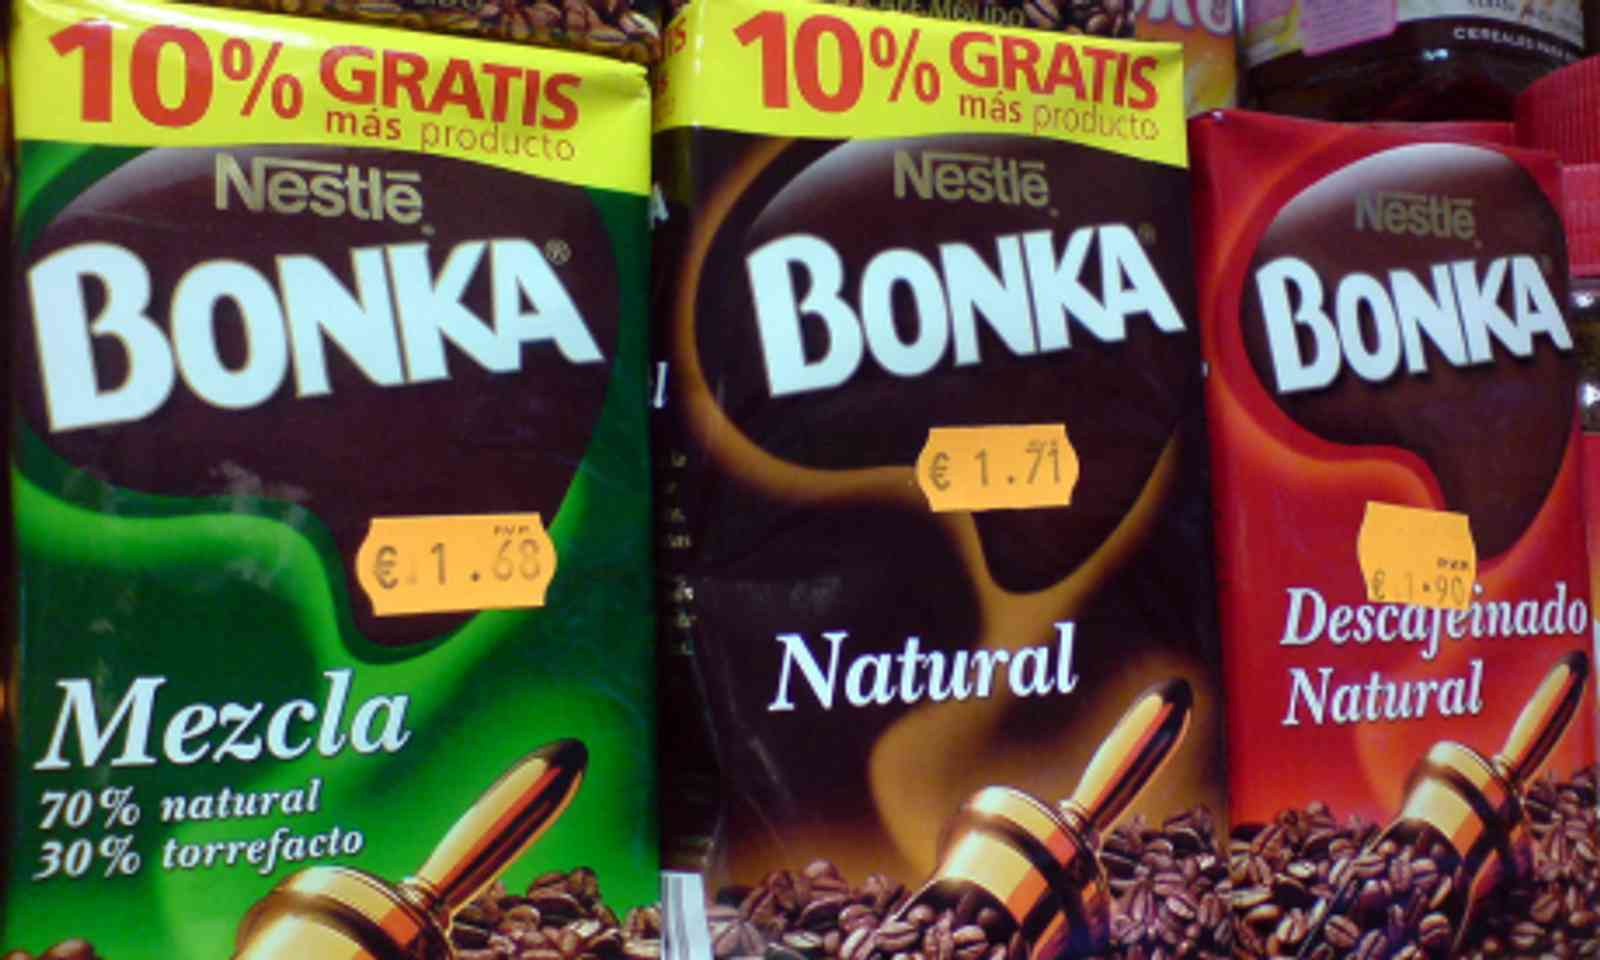 Bonka Coffee